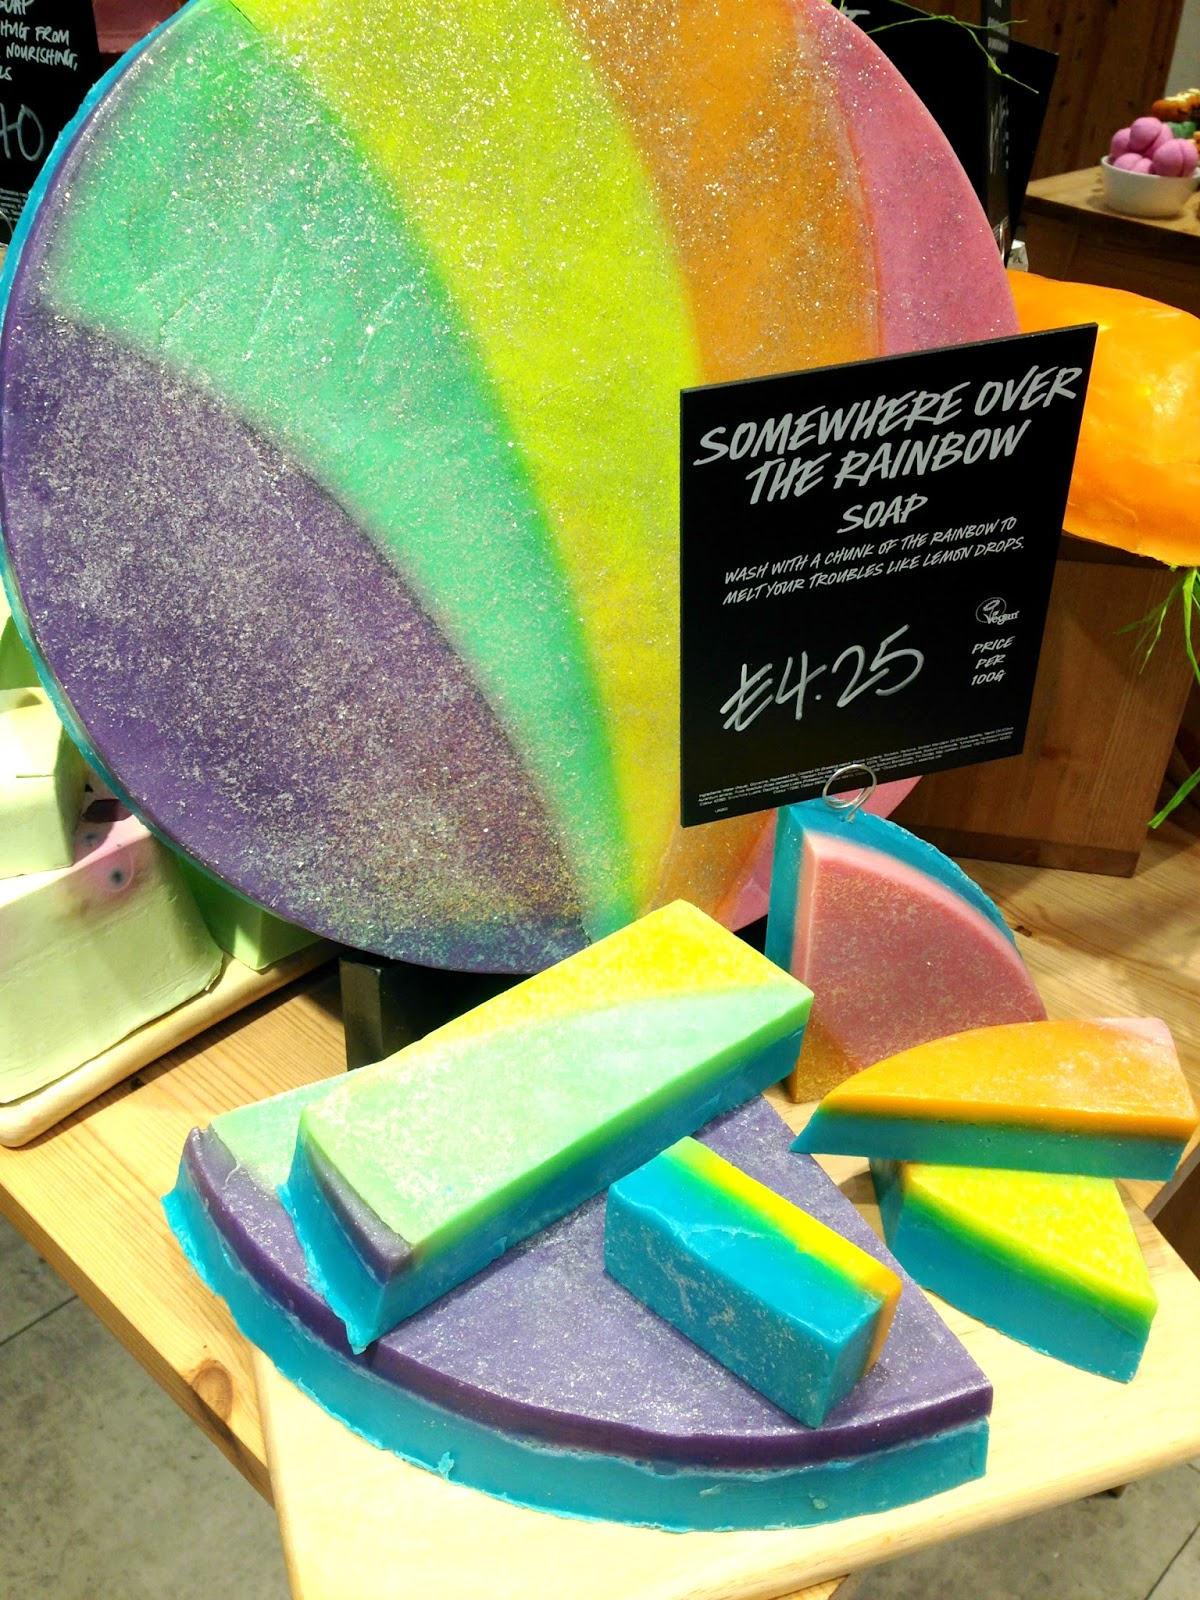 Somewhere Over the Rainbow Soap Lush